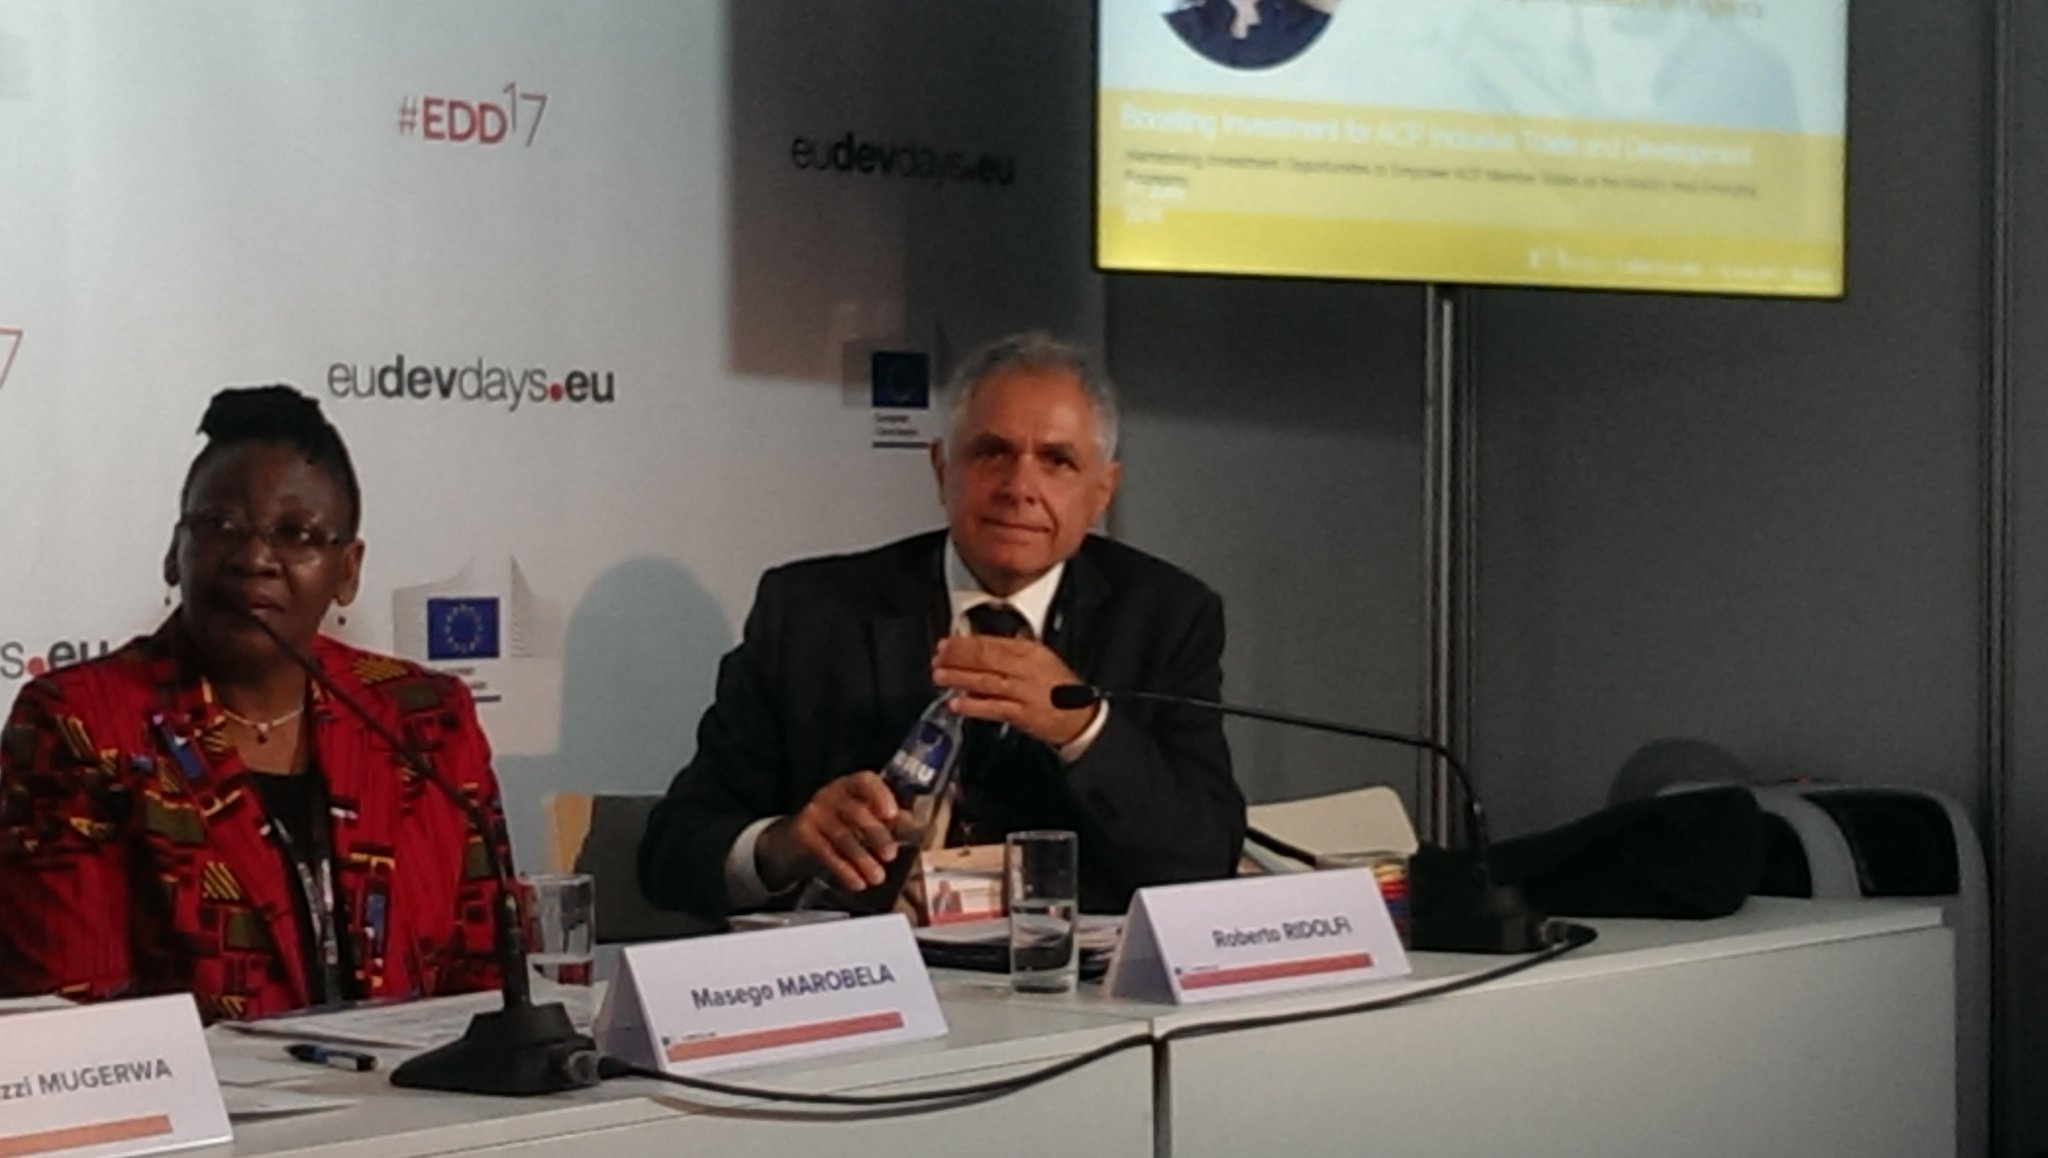 Thank you! @Robridolfi at #EDD17 congratulates @CTAflash on work done on #agriculture & #rural development in context of #ACPEU relationship https://t.co/iQEk5lTYZS